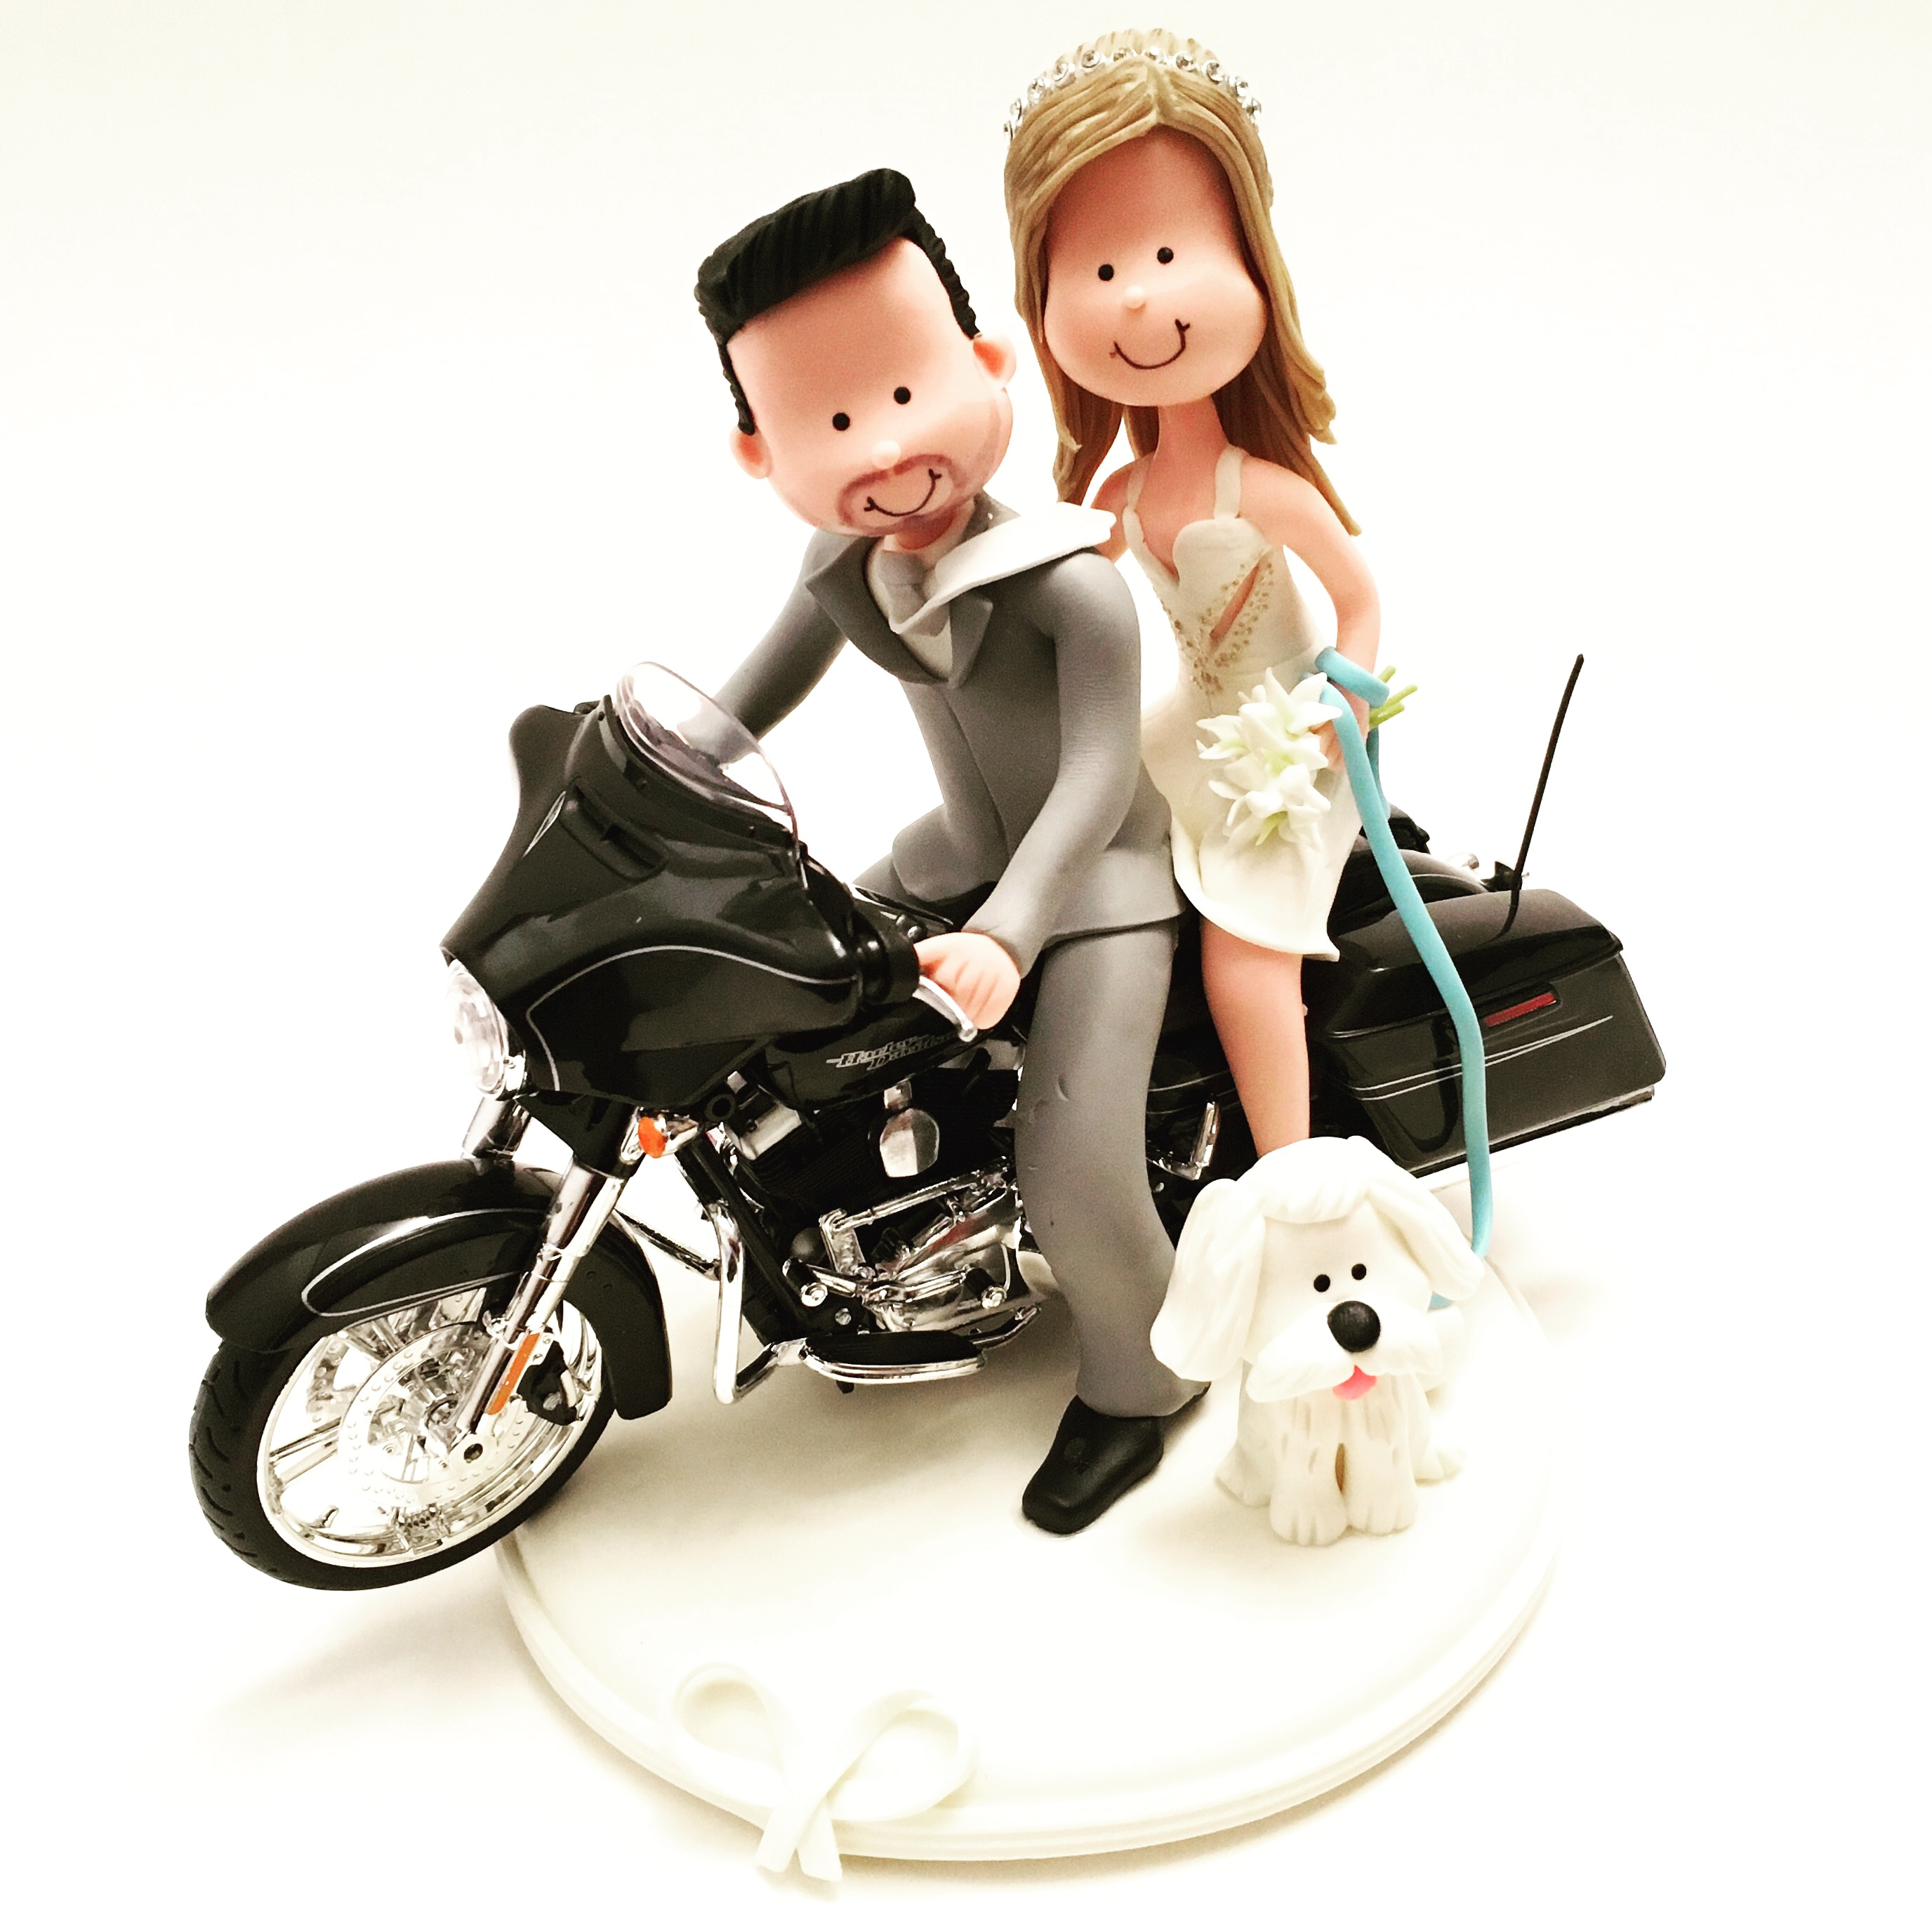 wedding-cake-topper-motorcycle-15